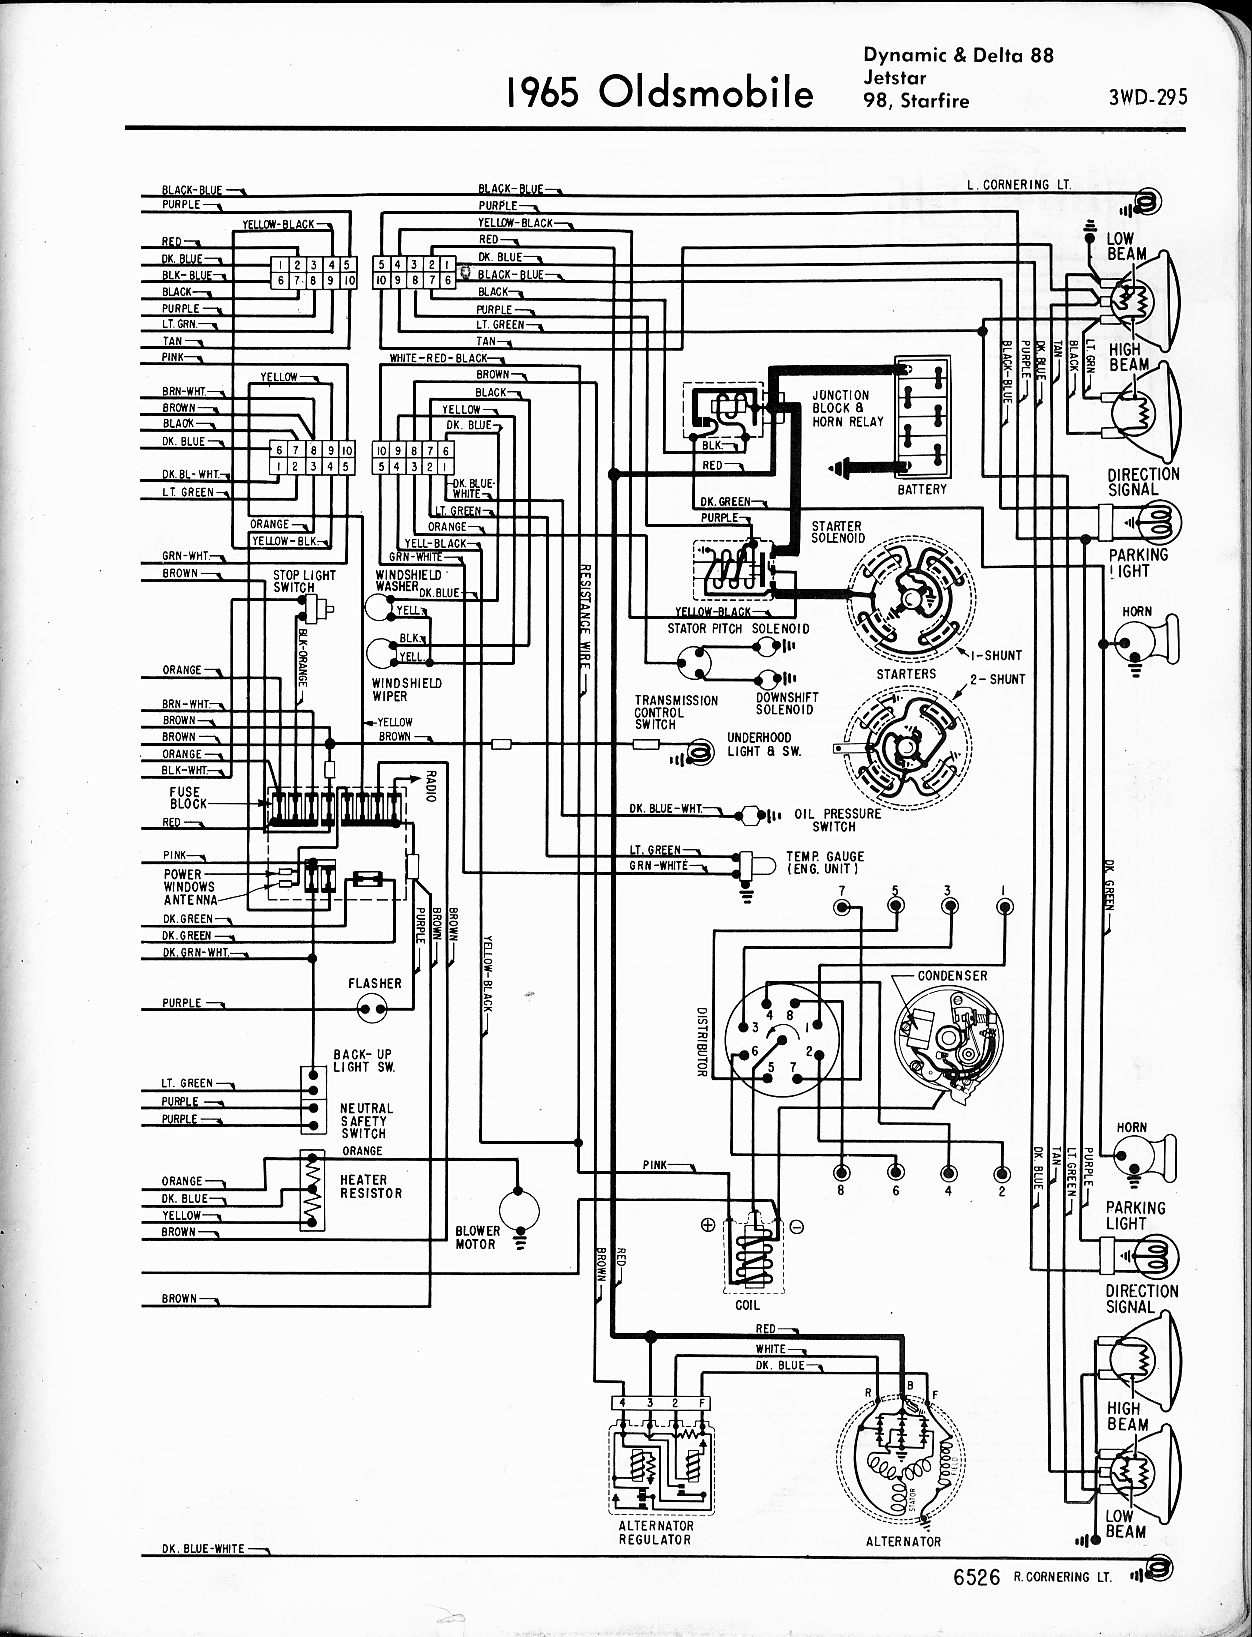 1967 oldsmobile toronado wiring diagram oldsmobile wiring diagrams - the old car manual project 1967 oldsmobile 98 wiring diagram